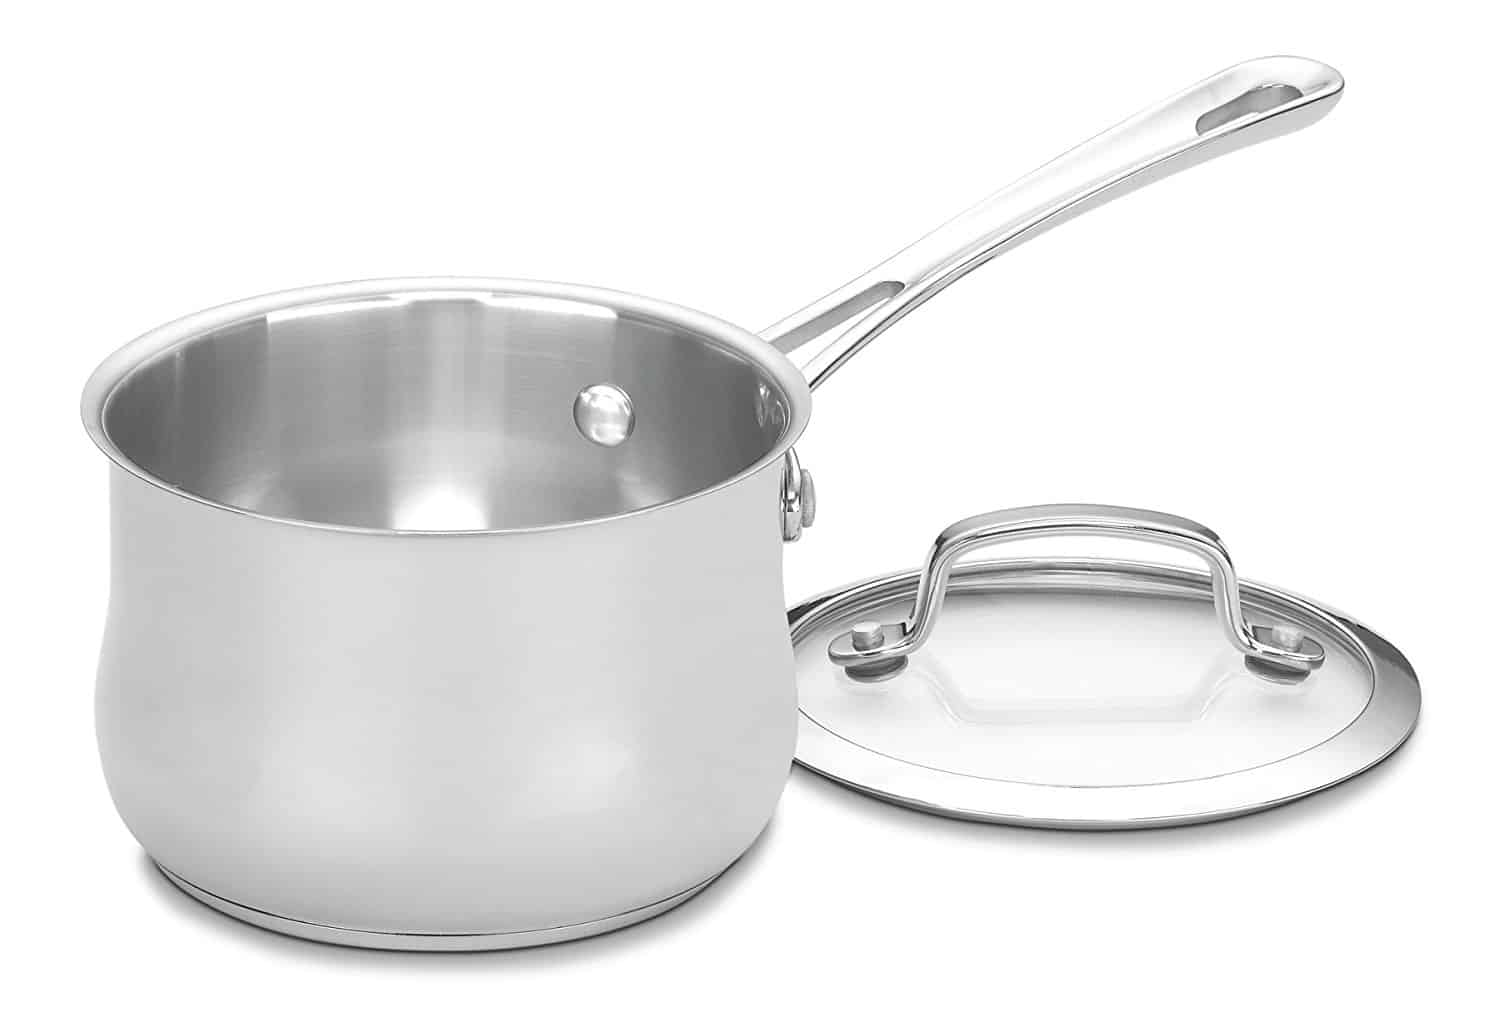 Cuisinart 419-14 contour stainless 1-quart sauce pan with lid.